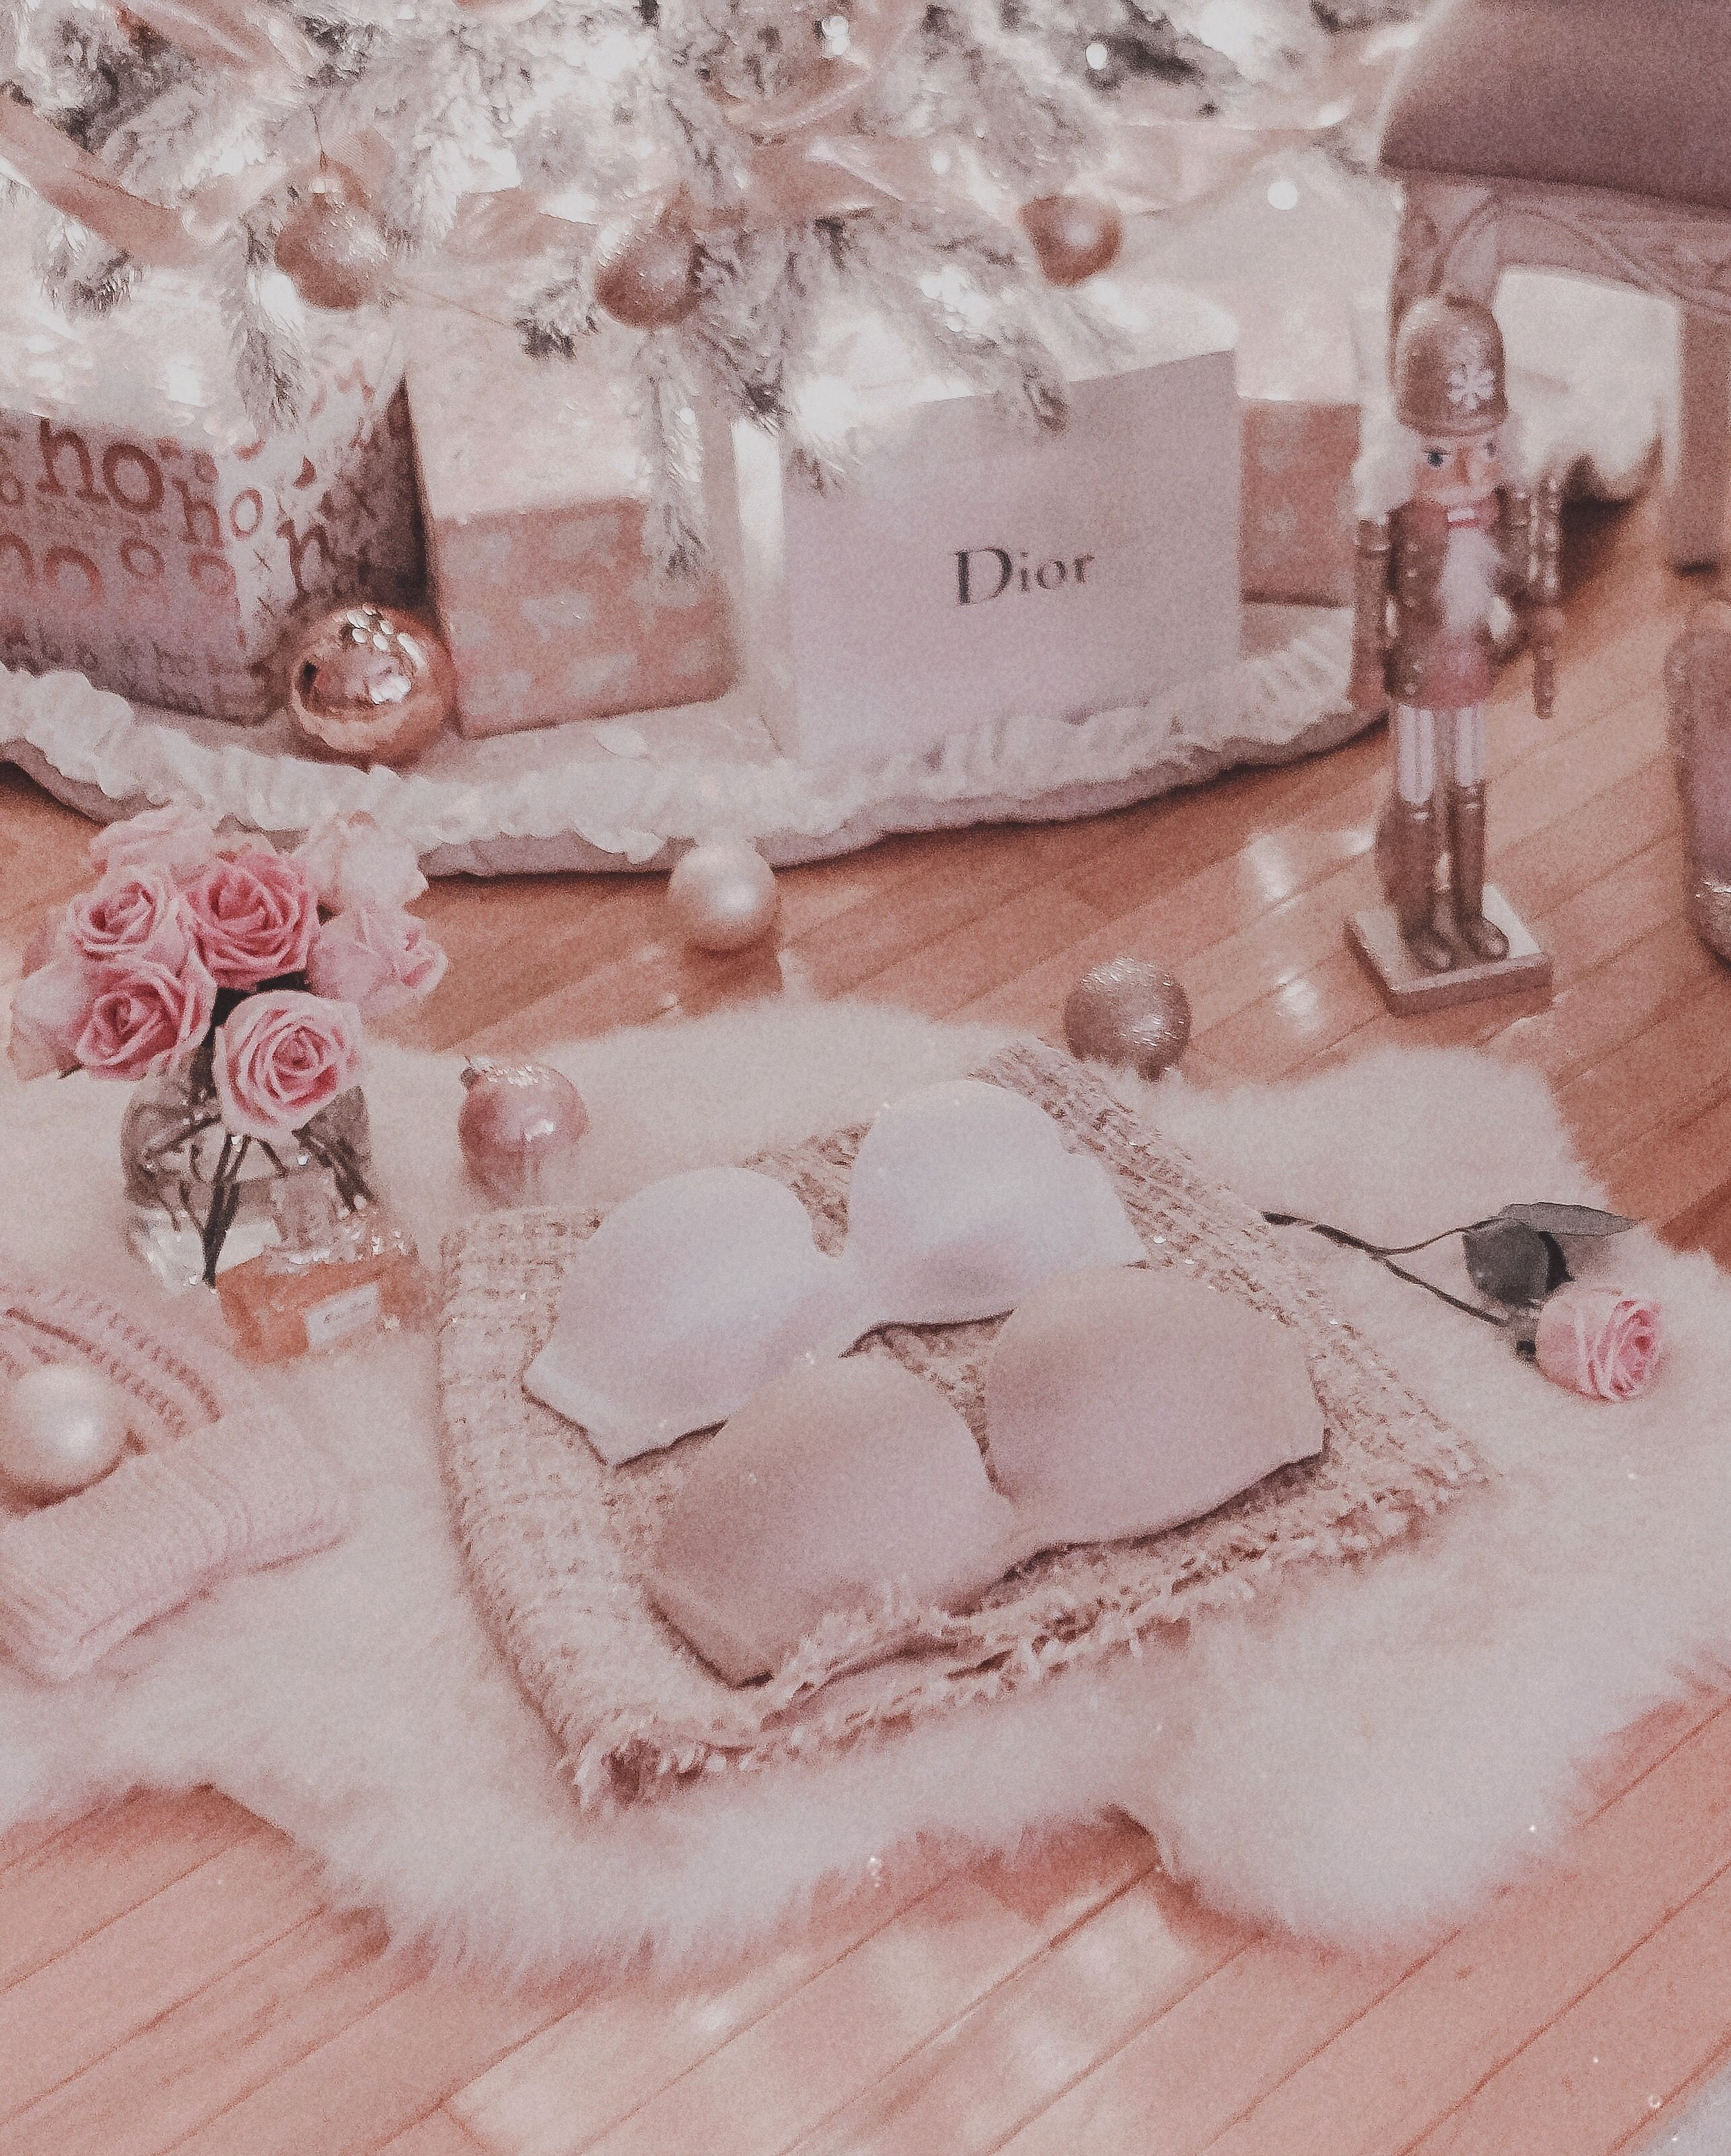 December Pink Aesthetic Christmas Aesthetic Pink Christmas